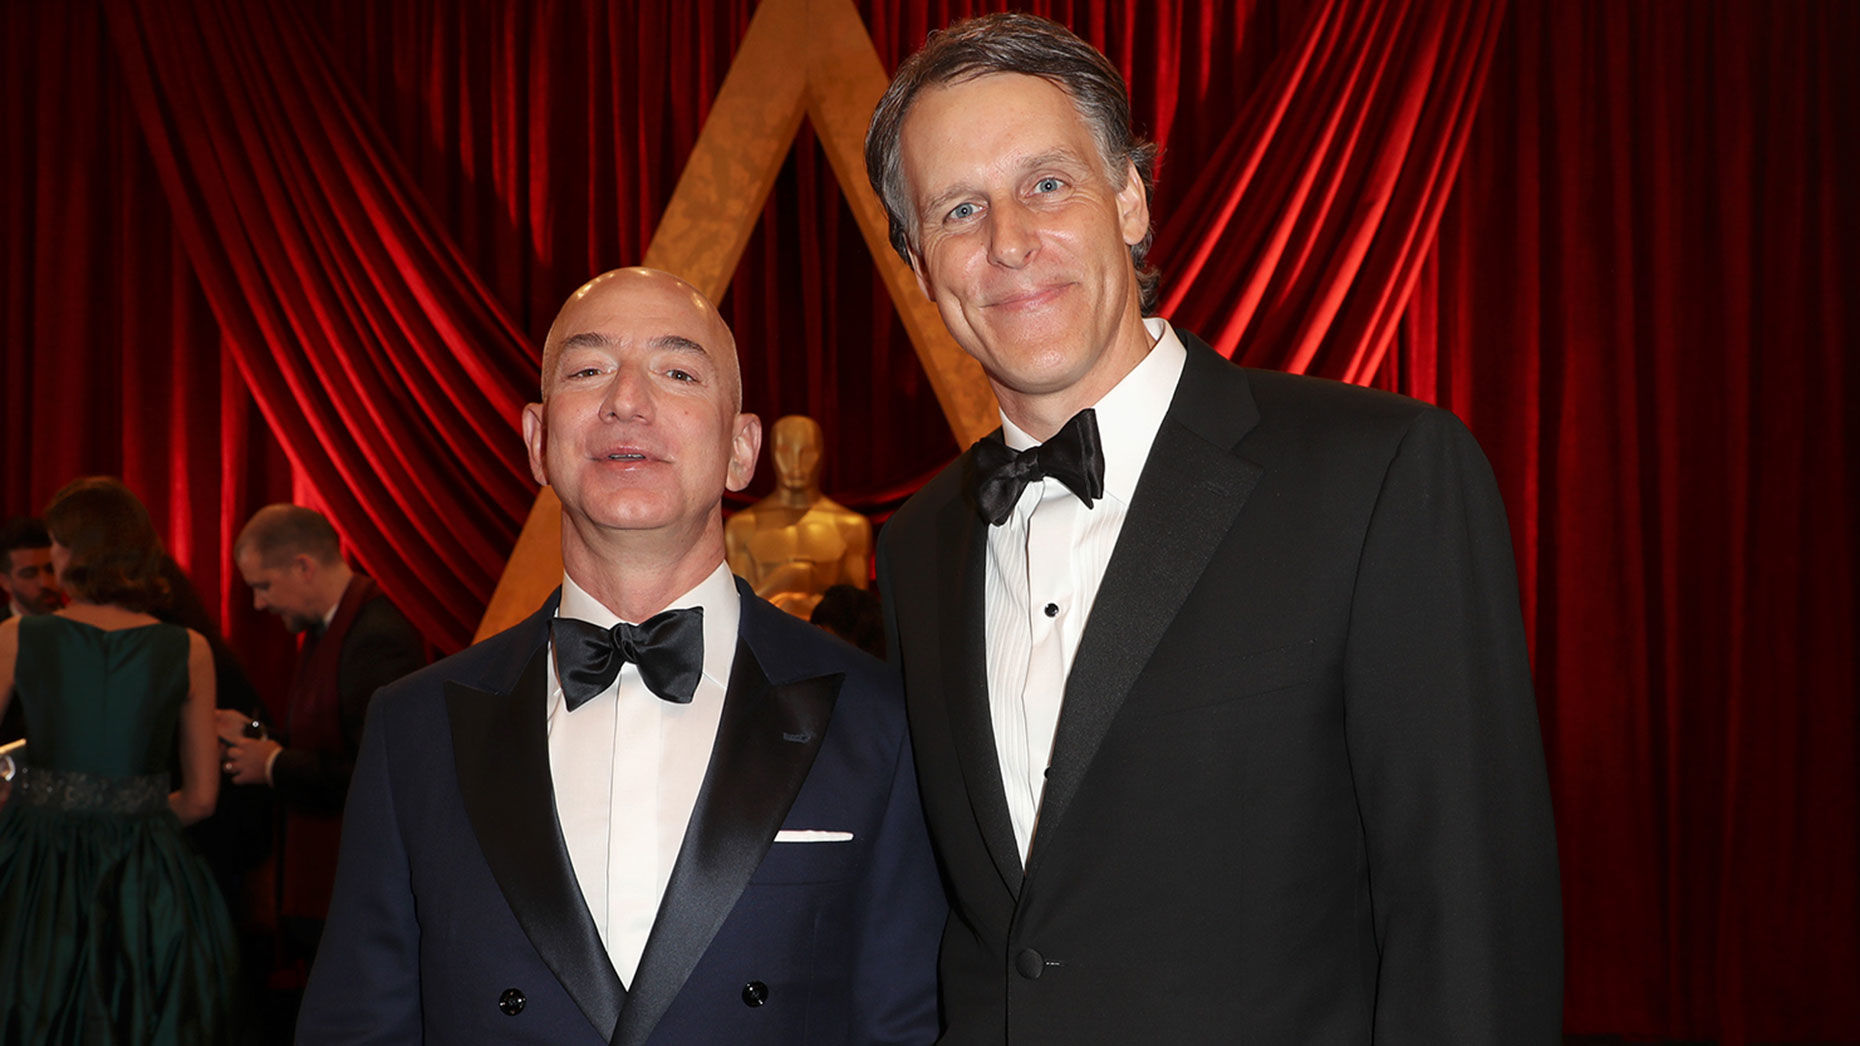 Jeff Bezos and Jeff Blackburn at the Academy Awards in 2017. Photo: Shutterstock